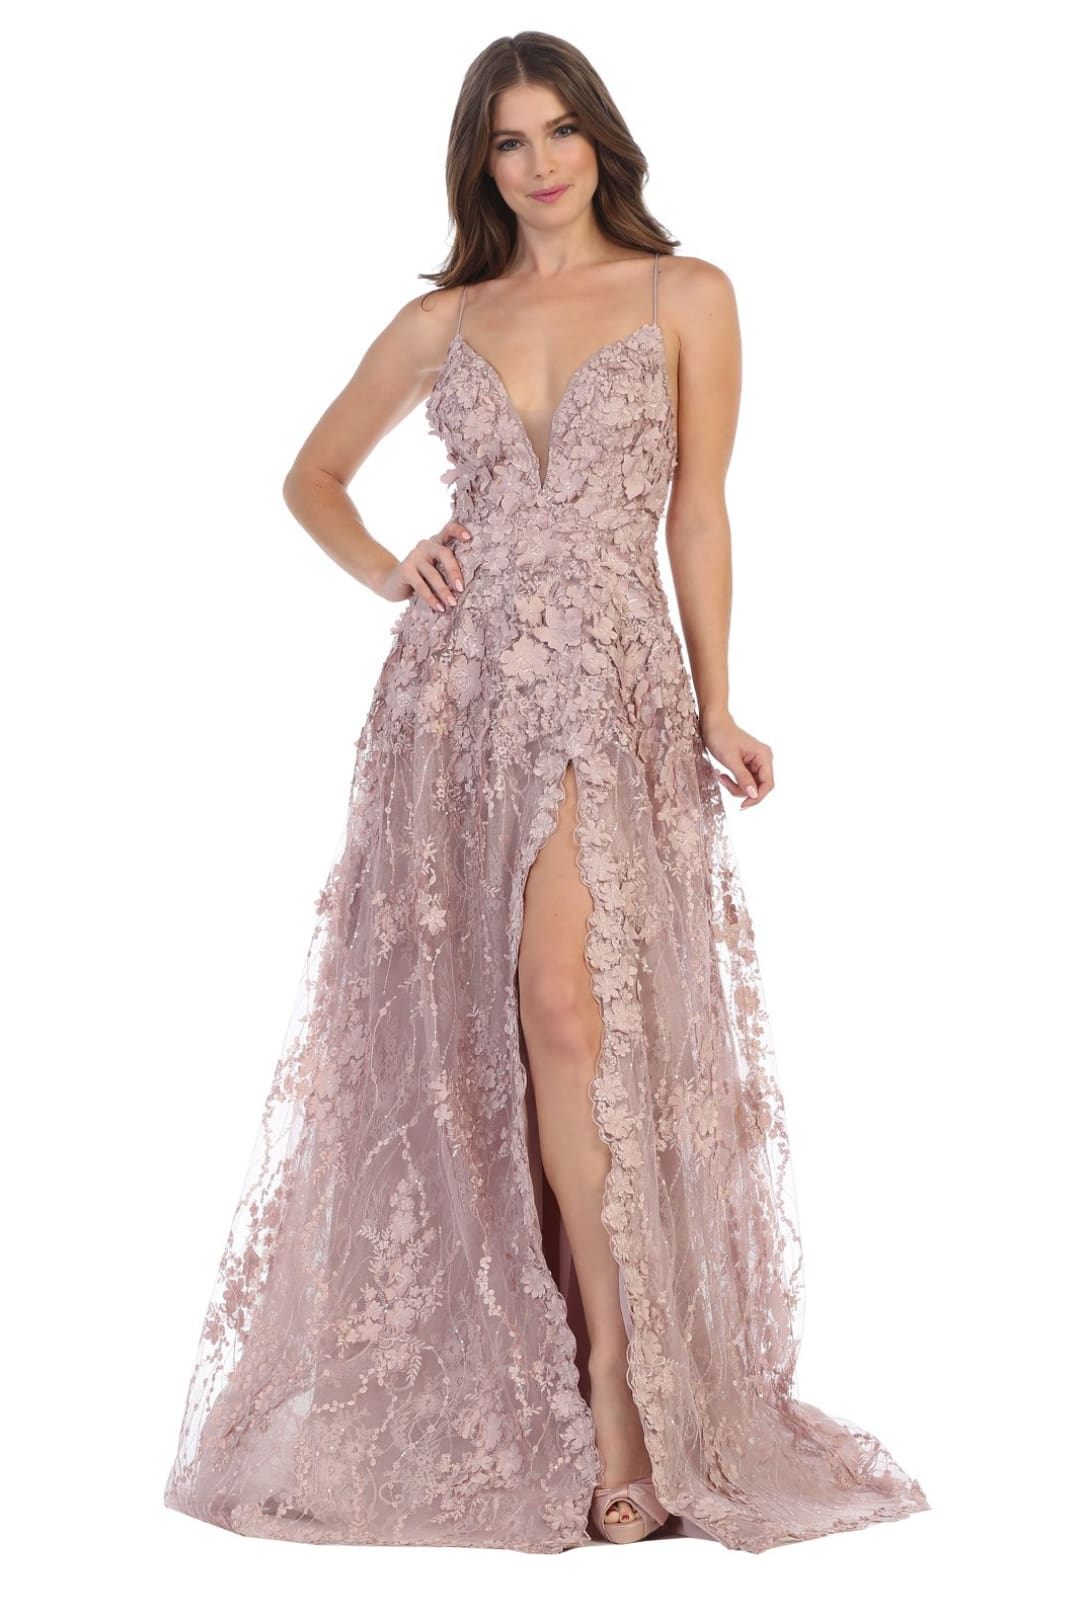 Thigh High Slit Prom Dress - Mauve / 2